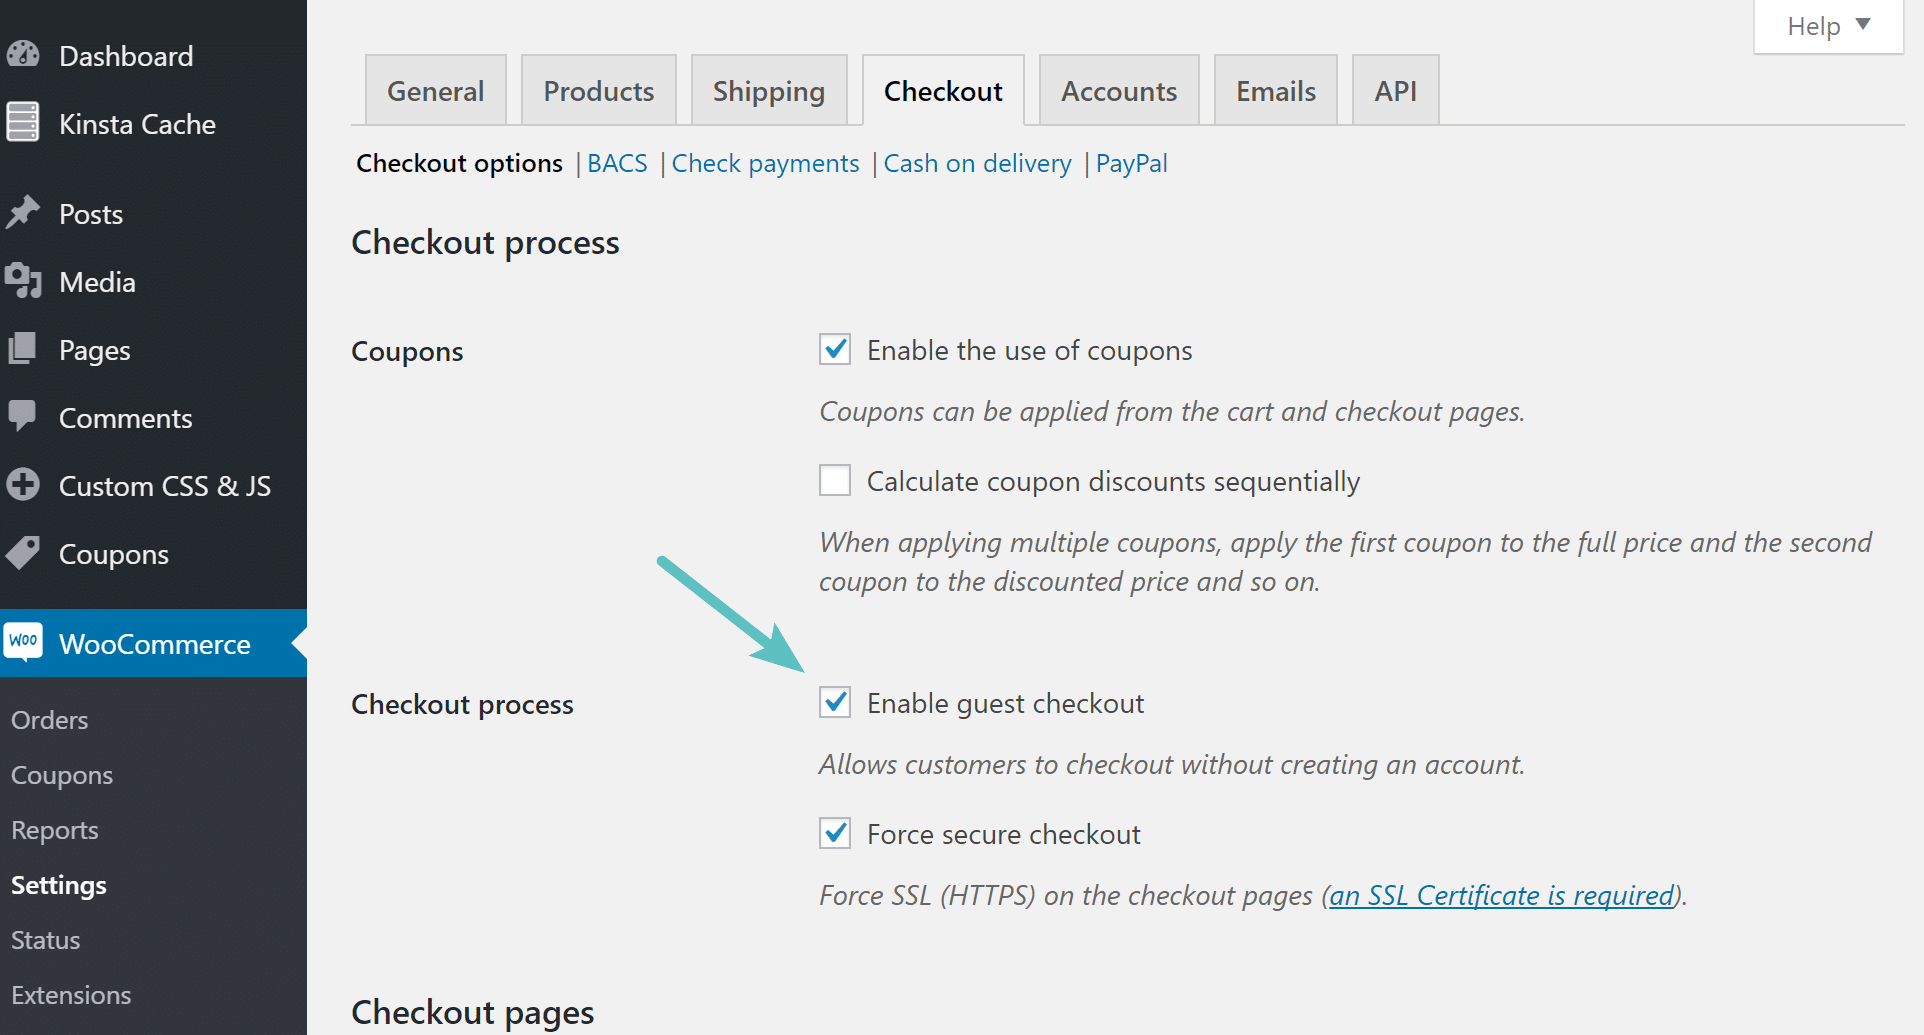 Enable guest checkout in WooCommerce